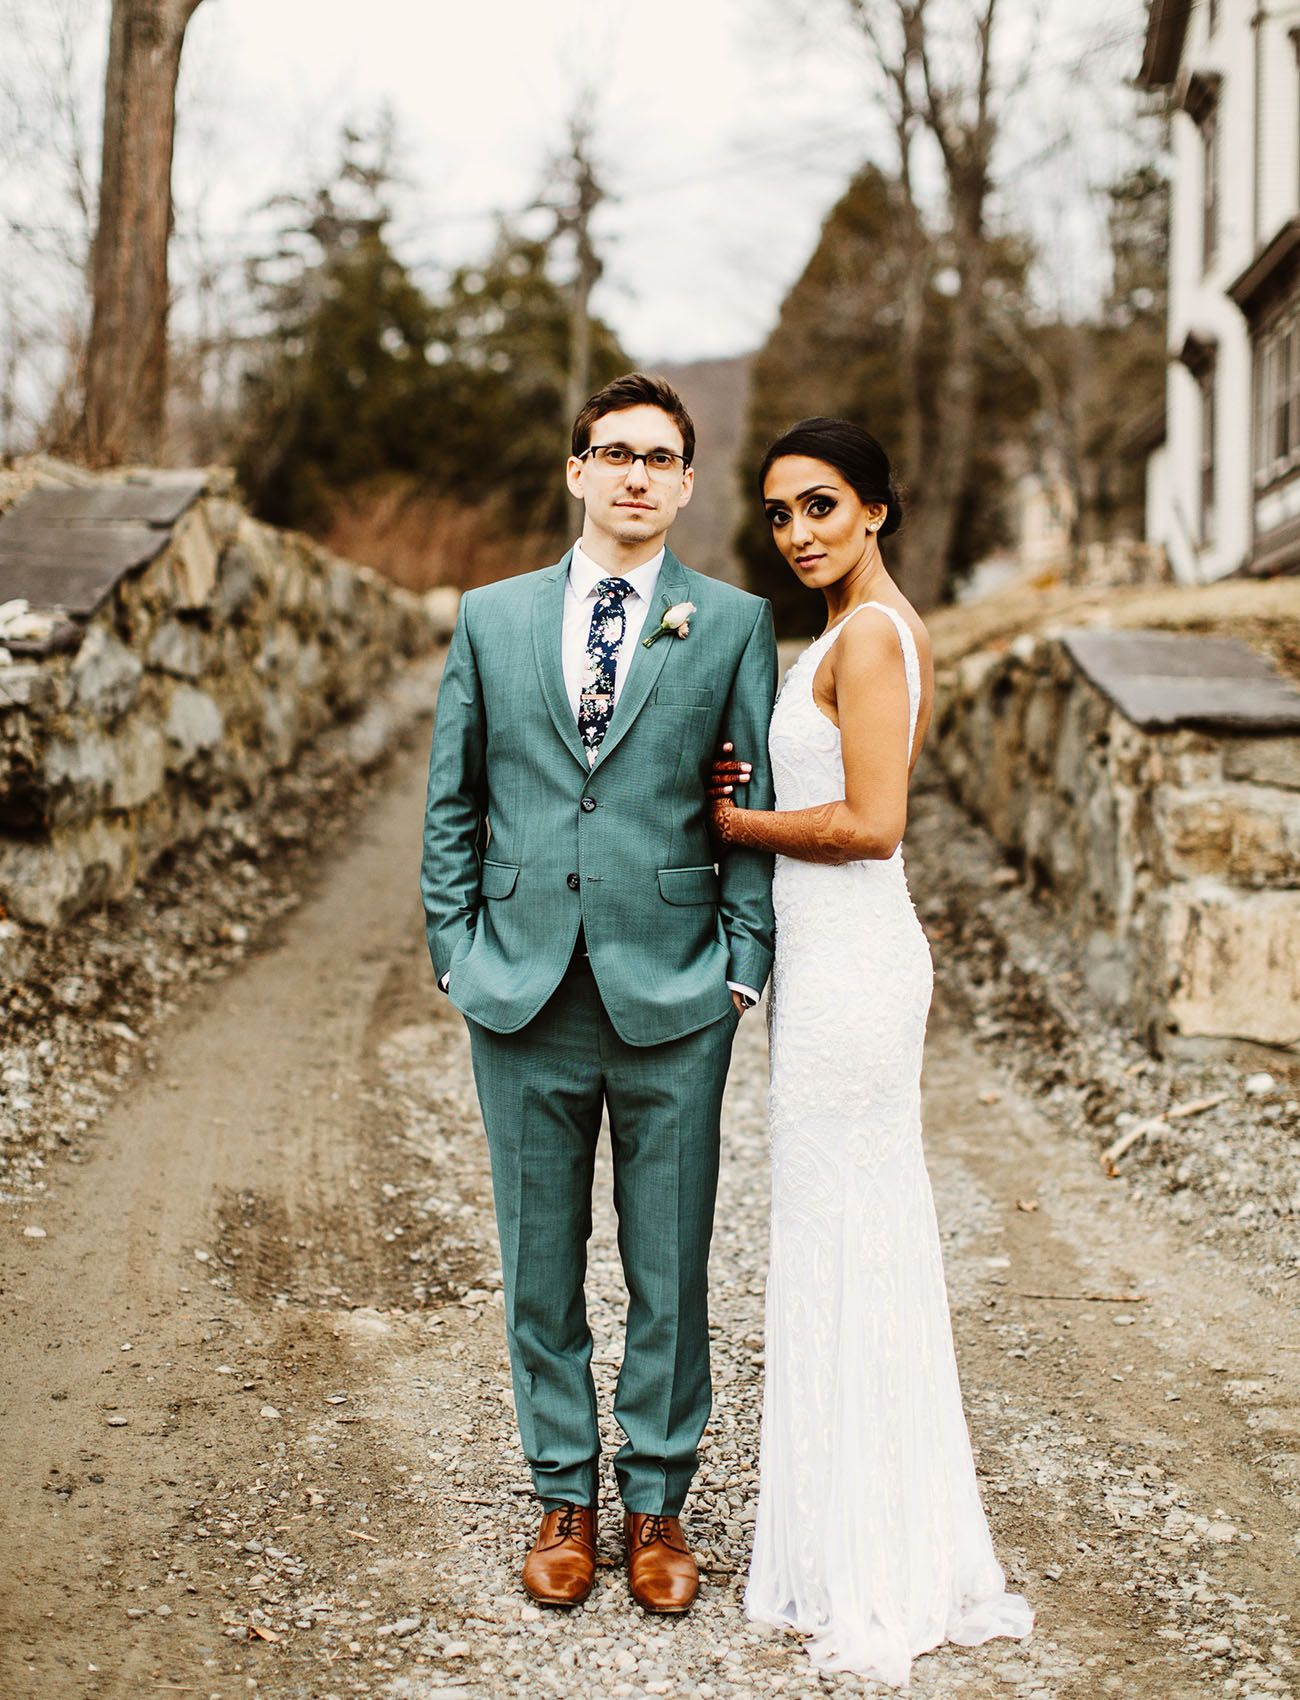 Mixing Up Traditions A Vibrant Indian Wedding With Hip Rustic Reception Green Shoes